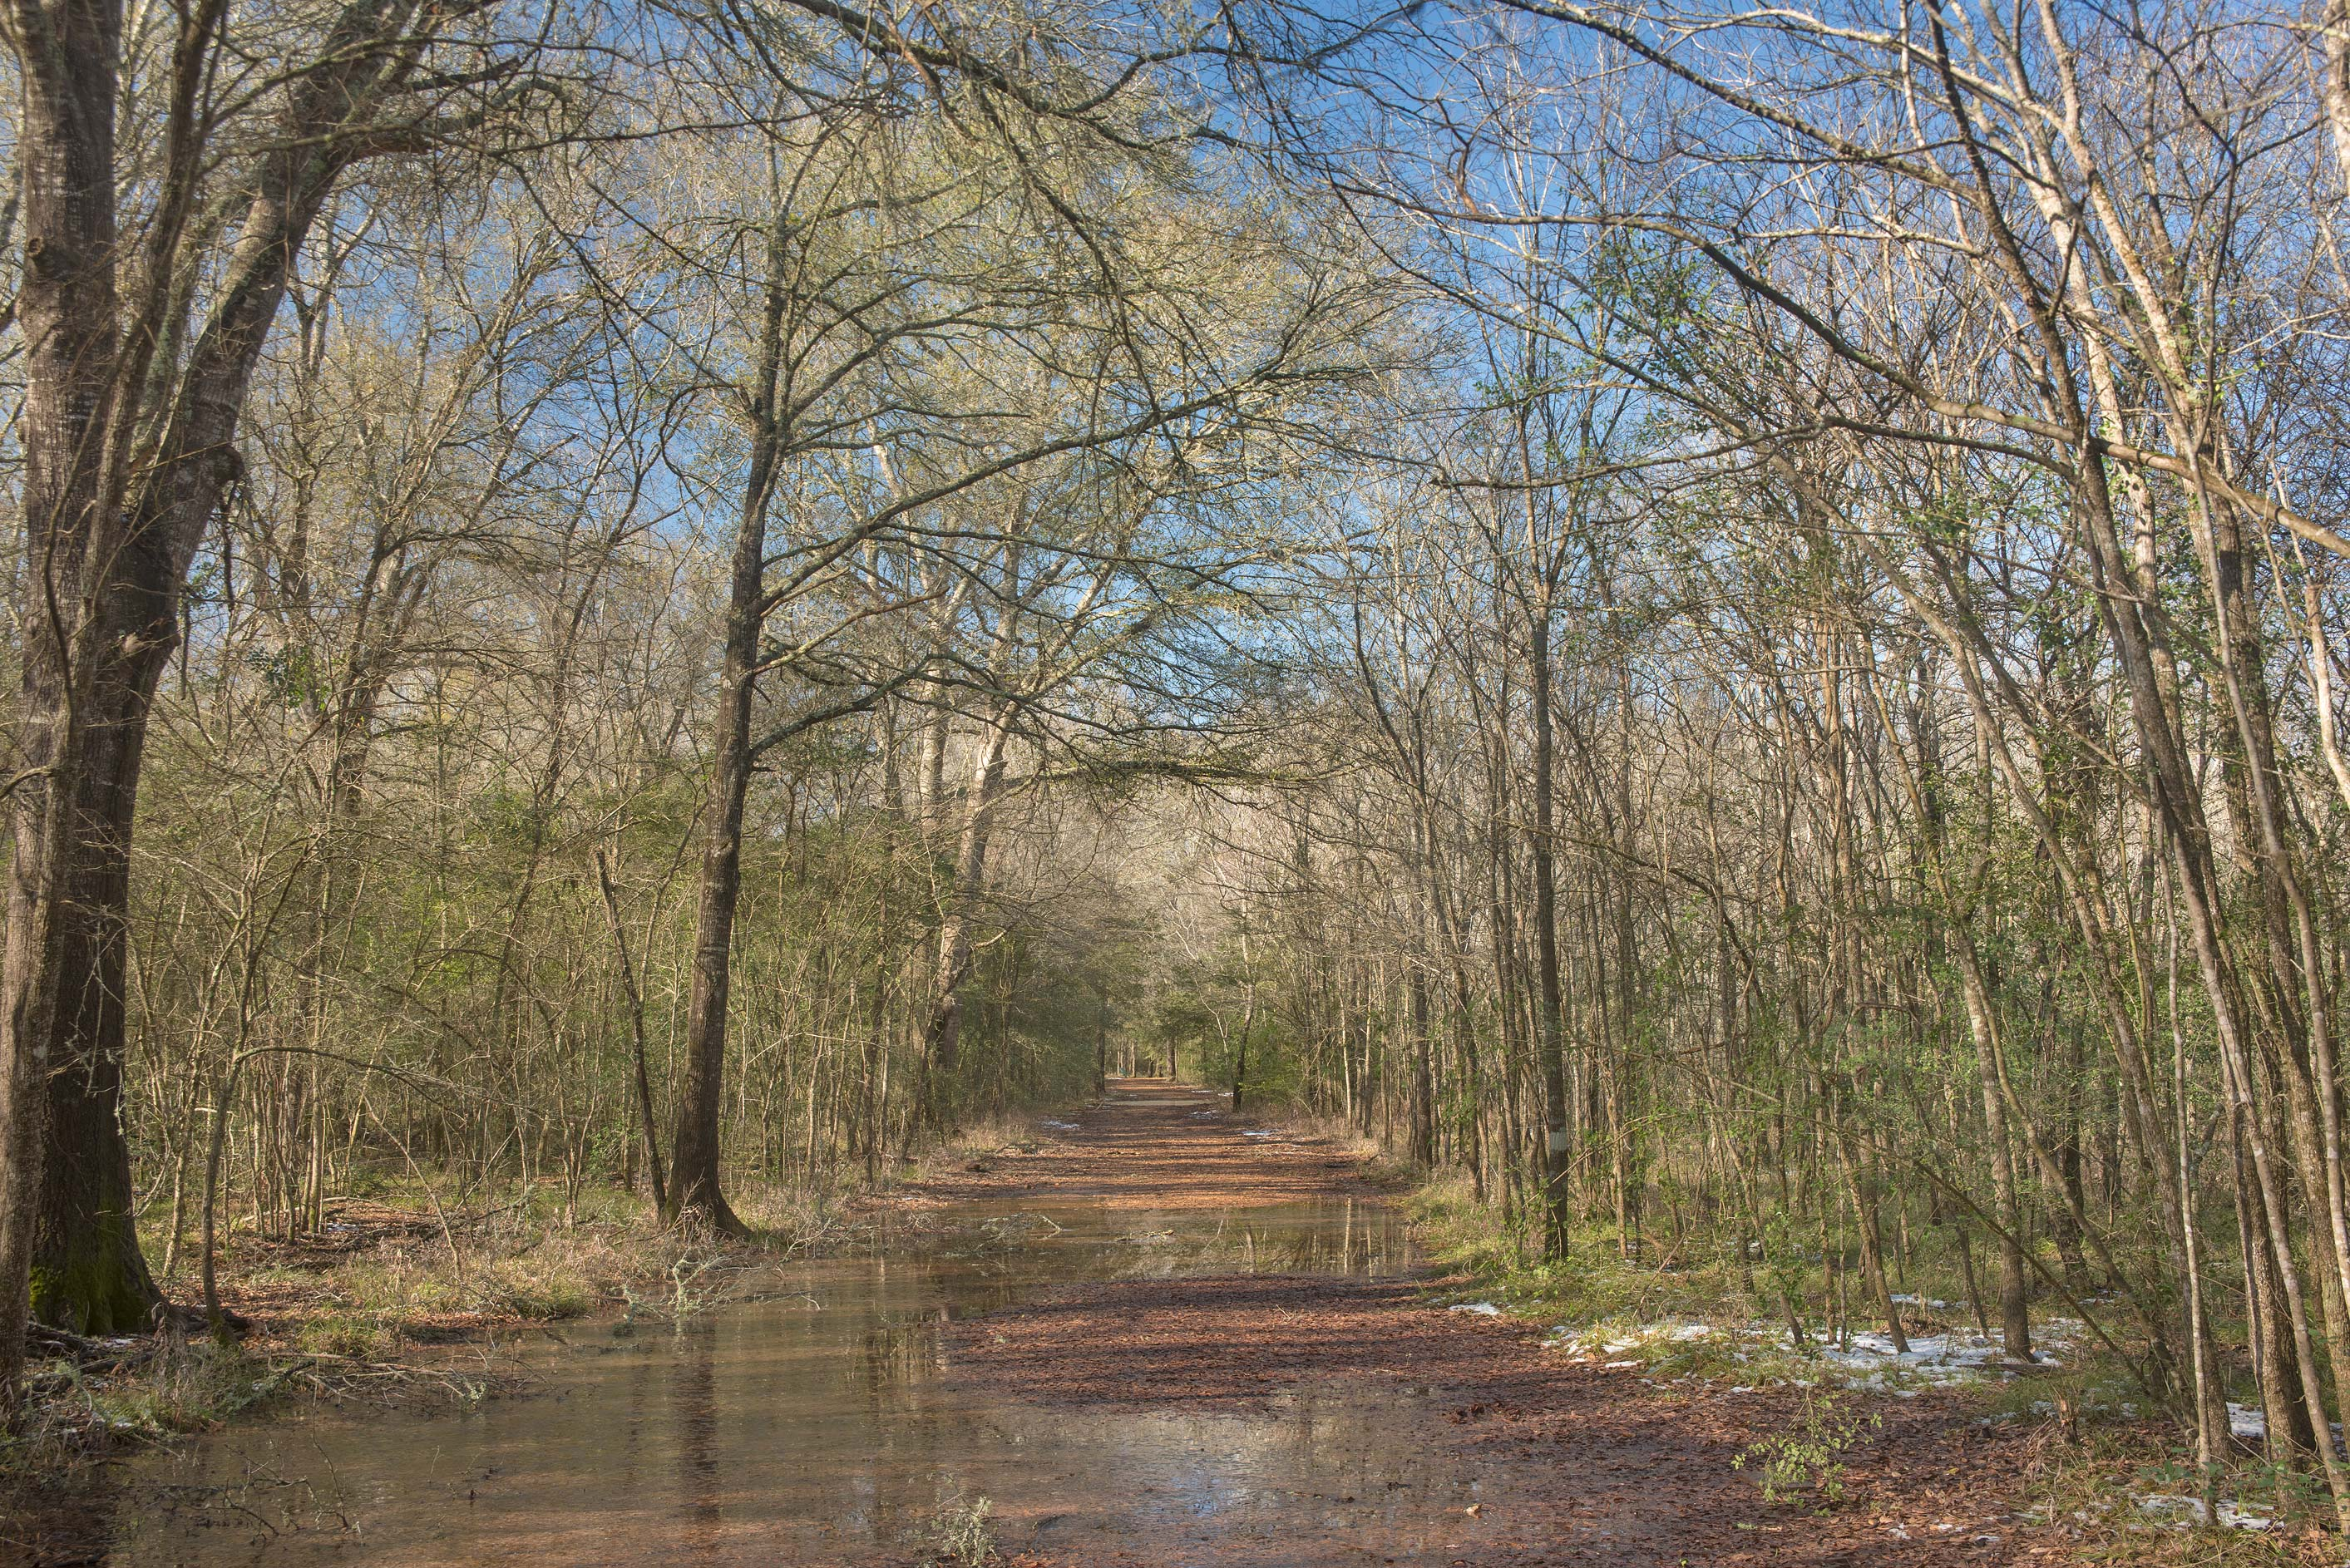 Sandy path with melting snow in Lick Creek Park. College Station, Texas